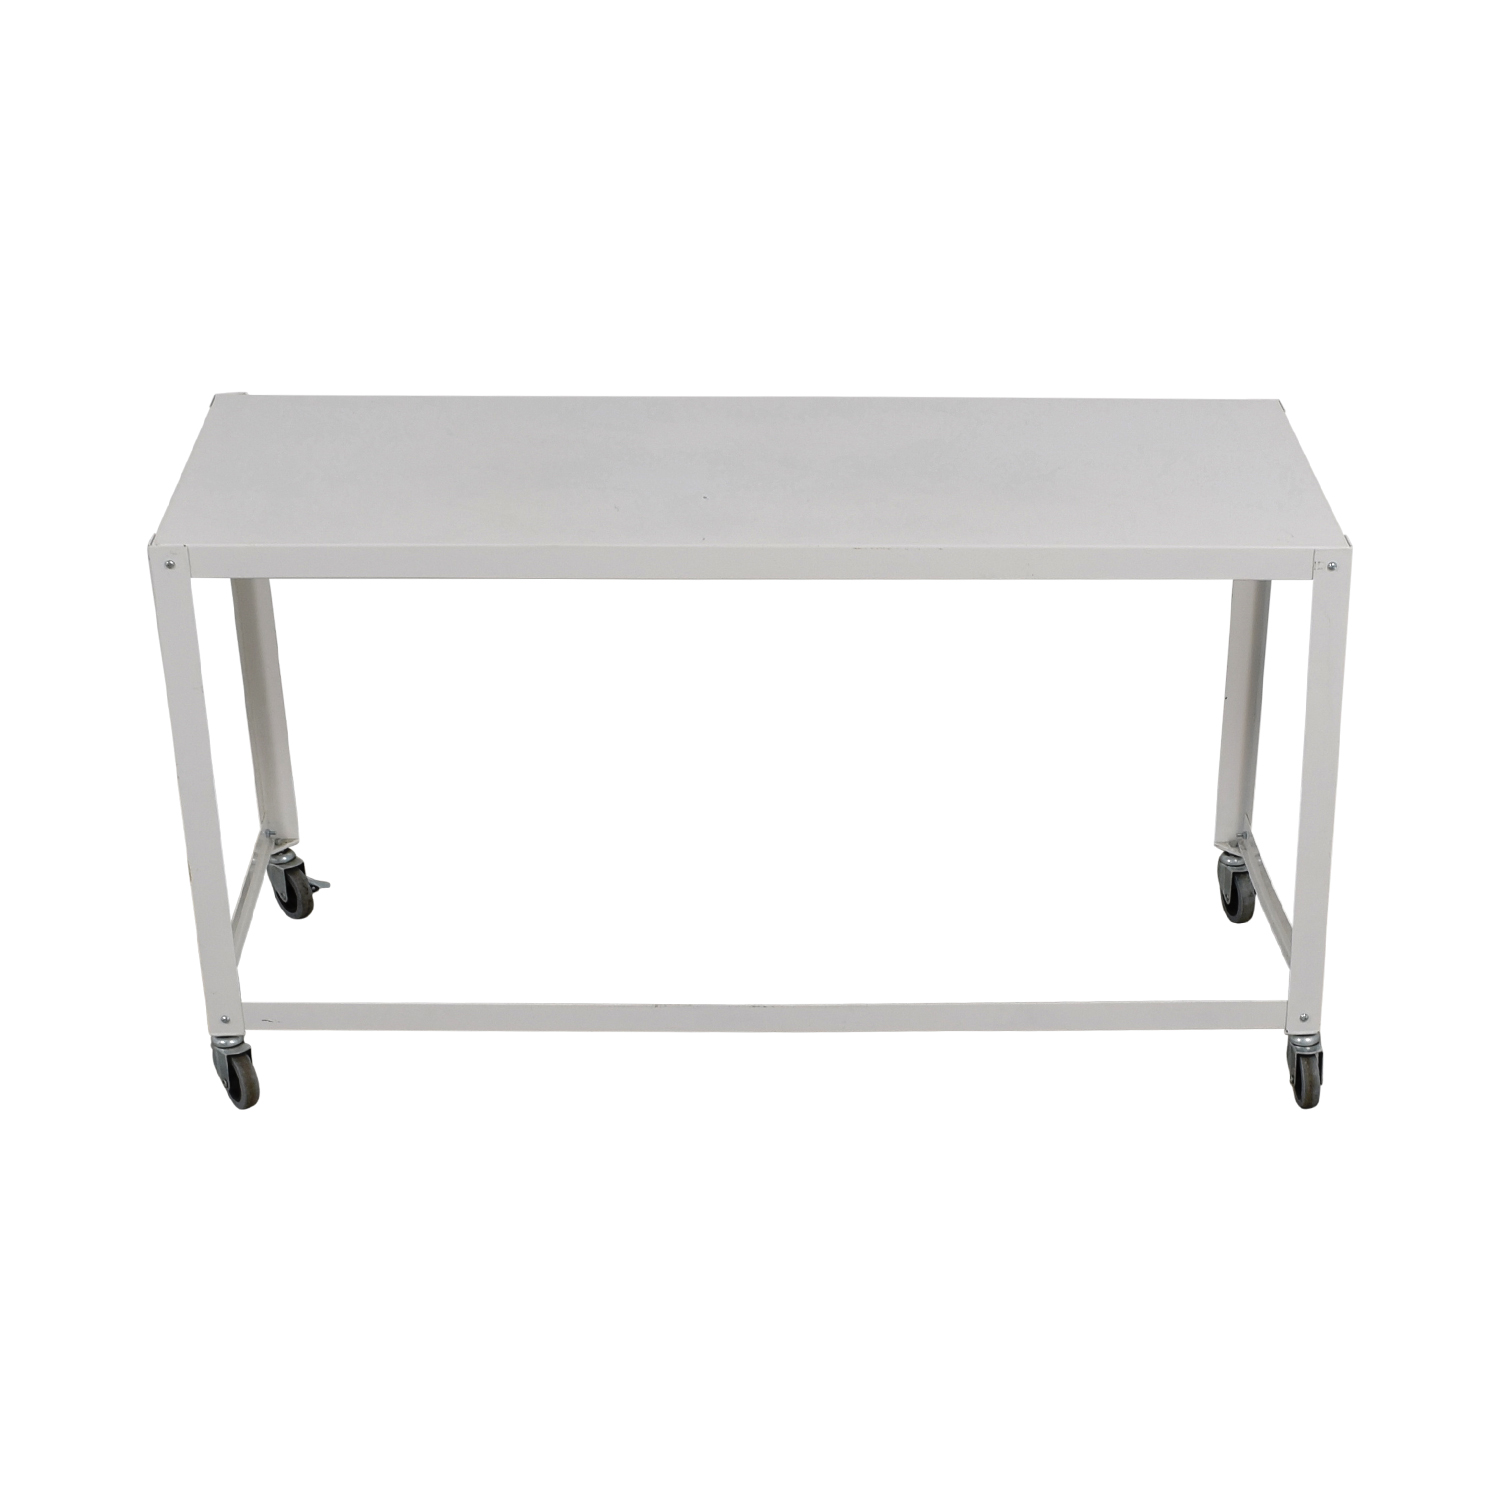 CB2 Go-Cart White Rolling Desk CB2